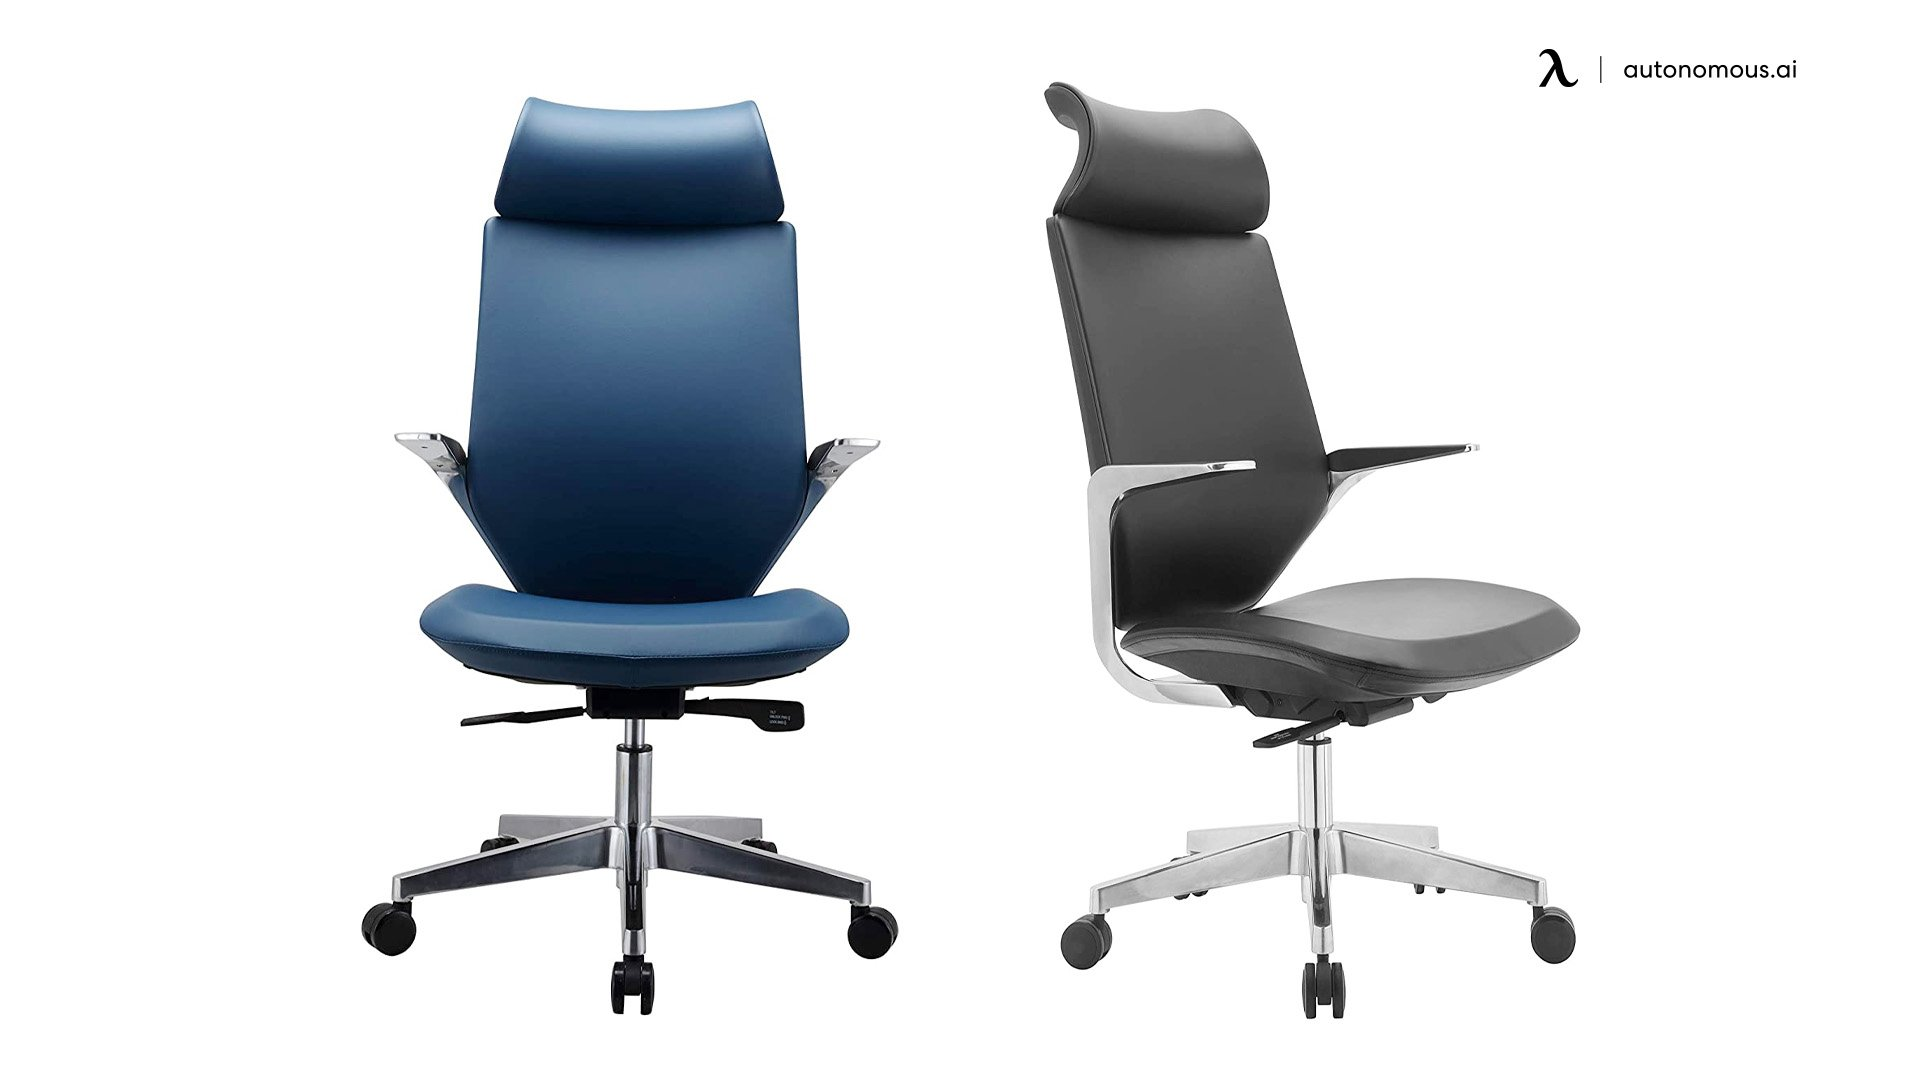 INNOWIN Parker High Back PU Leatherette Office Chair